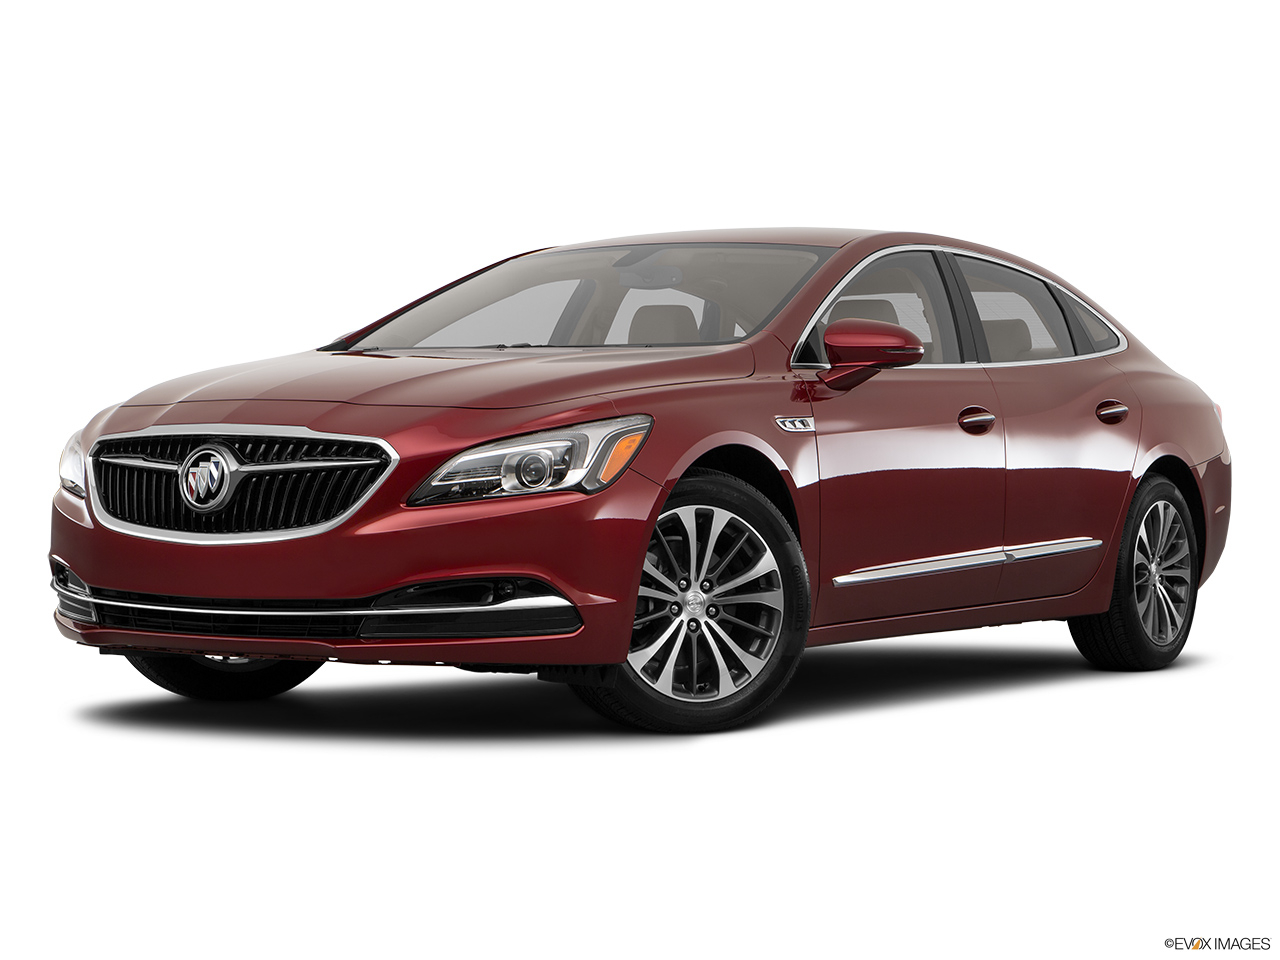 2020 Buick Lacrosse Automatic Awd 2021 Buick Lacrosse Lease Deals, Engine, Price